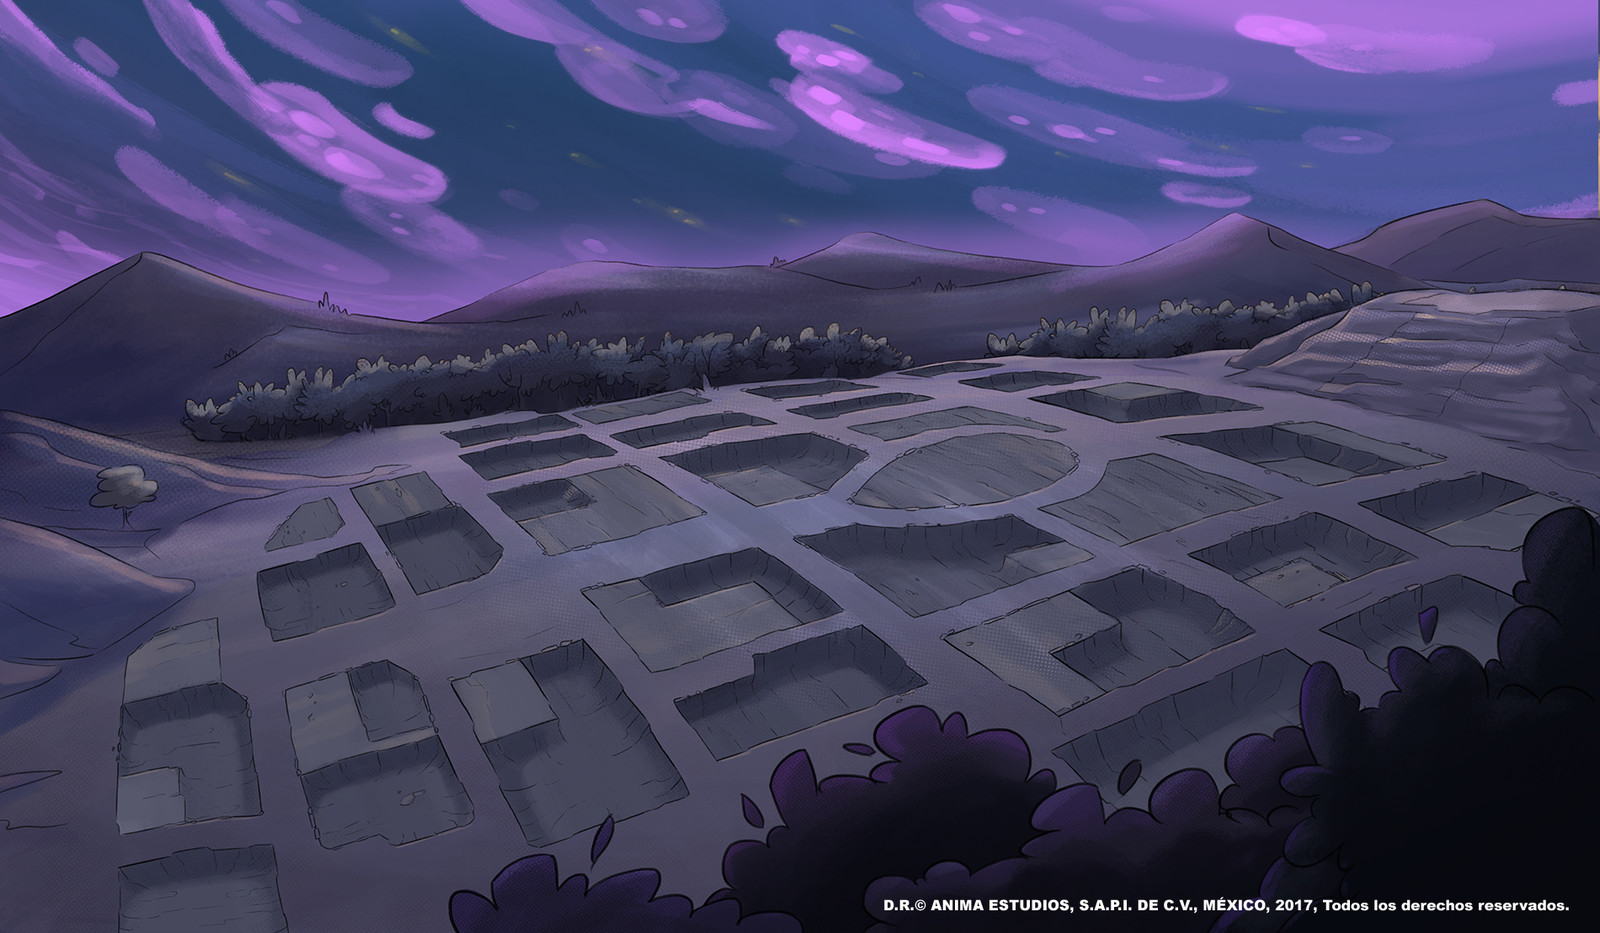 The disappeared town